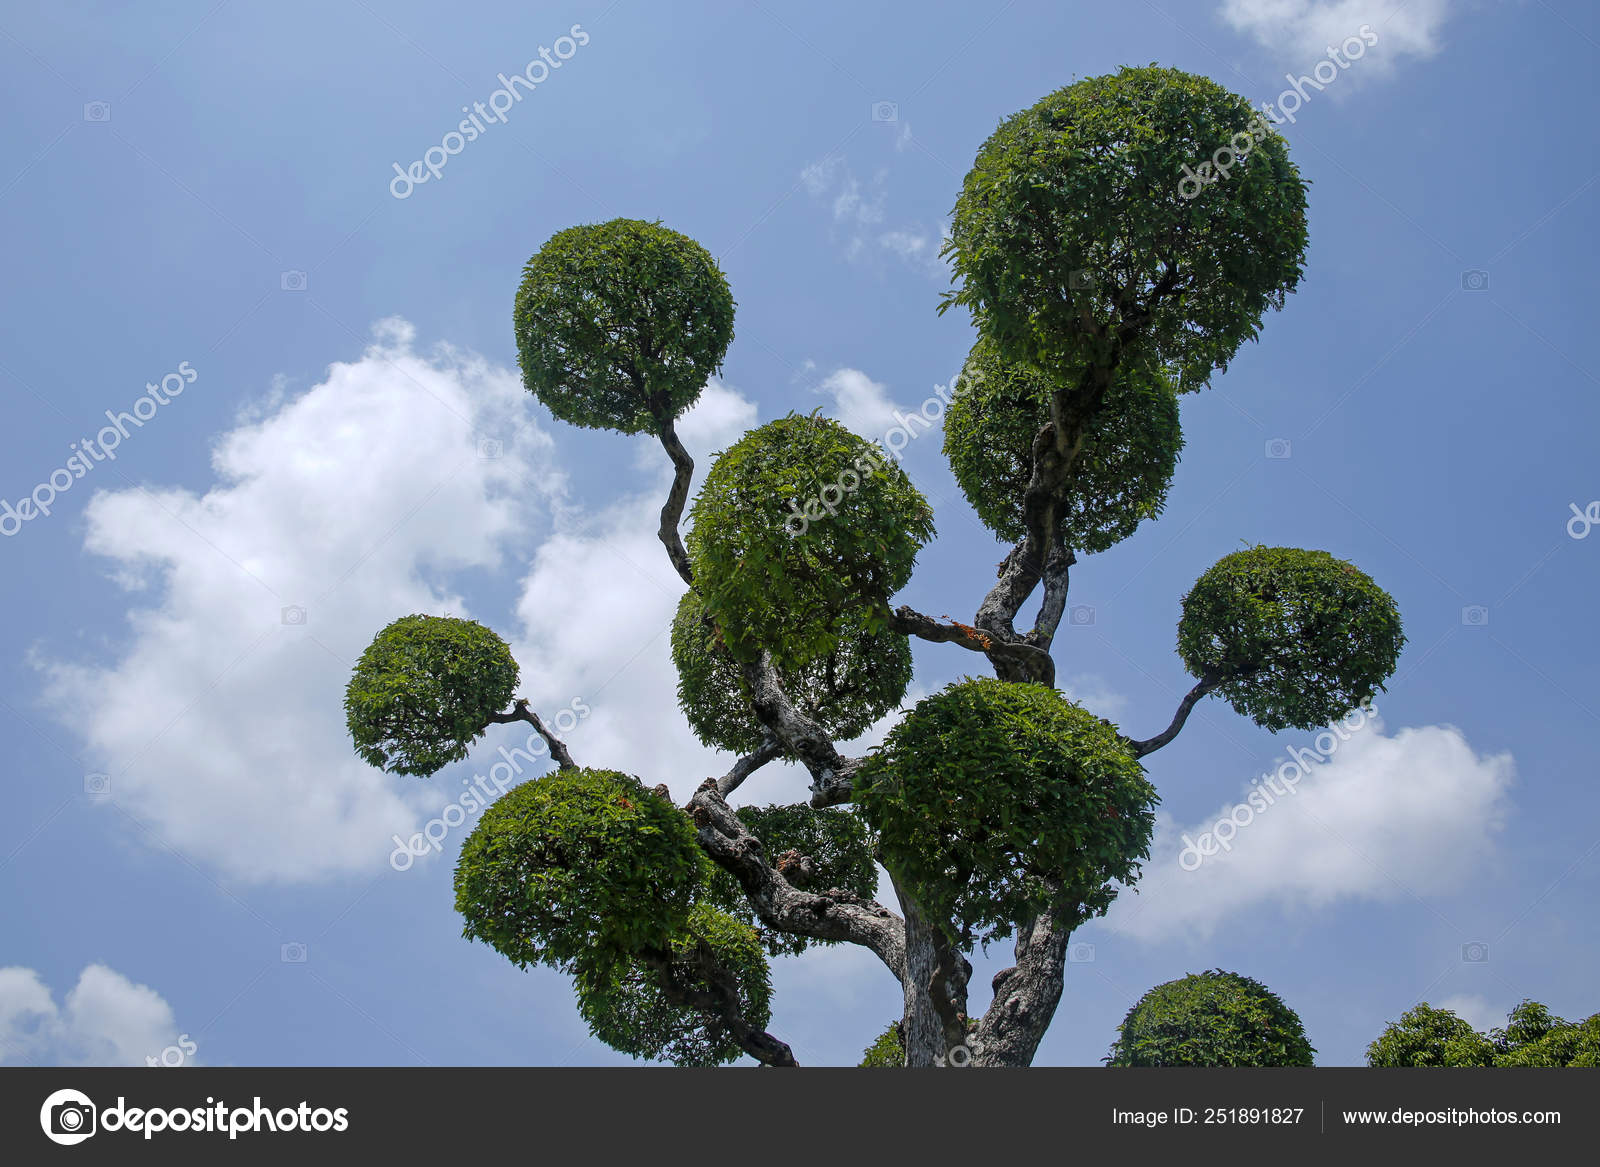 Large Bonsai Tree Against Blue Sky Stock Photo C Chrupka 251891827